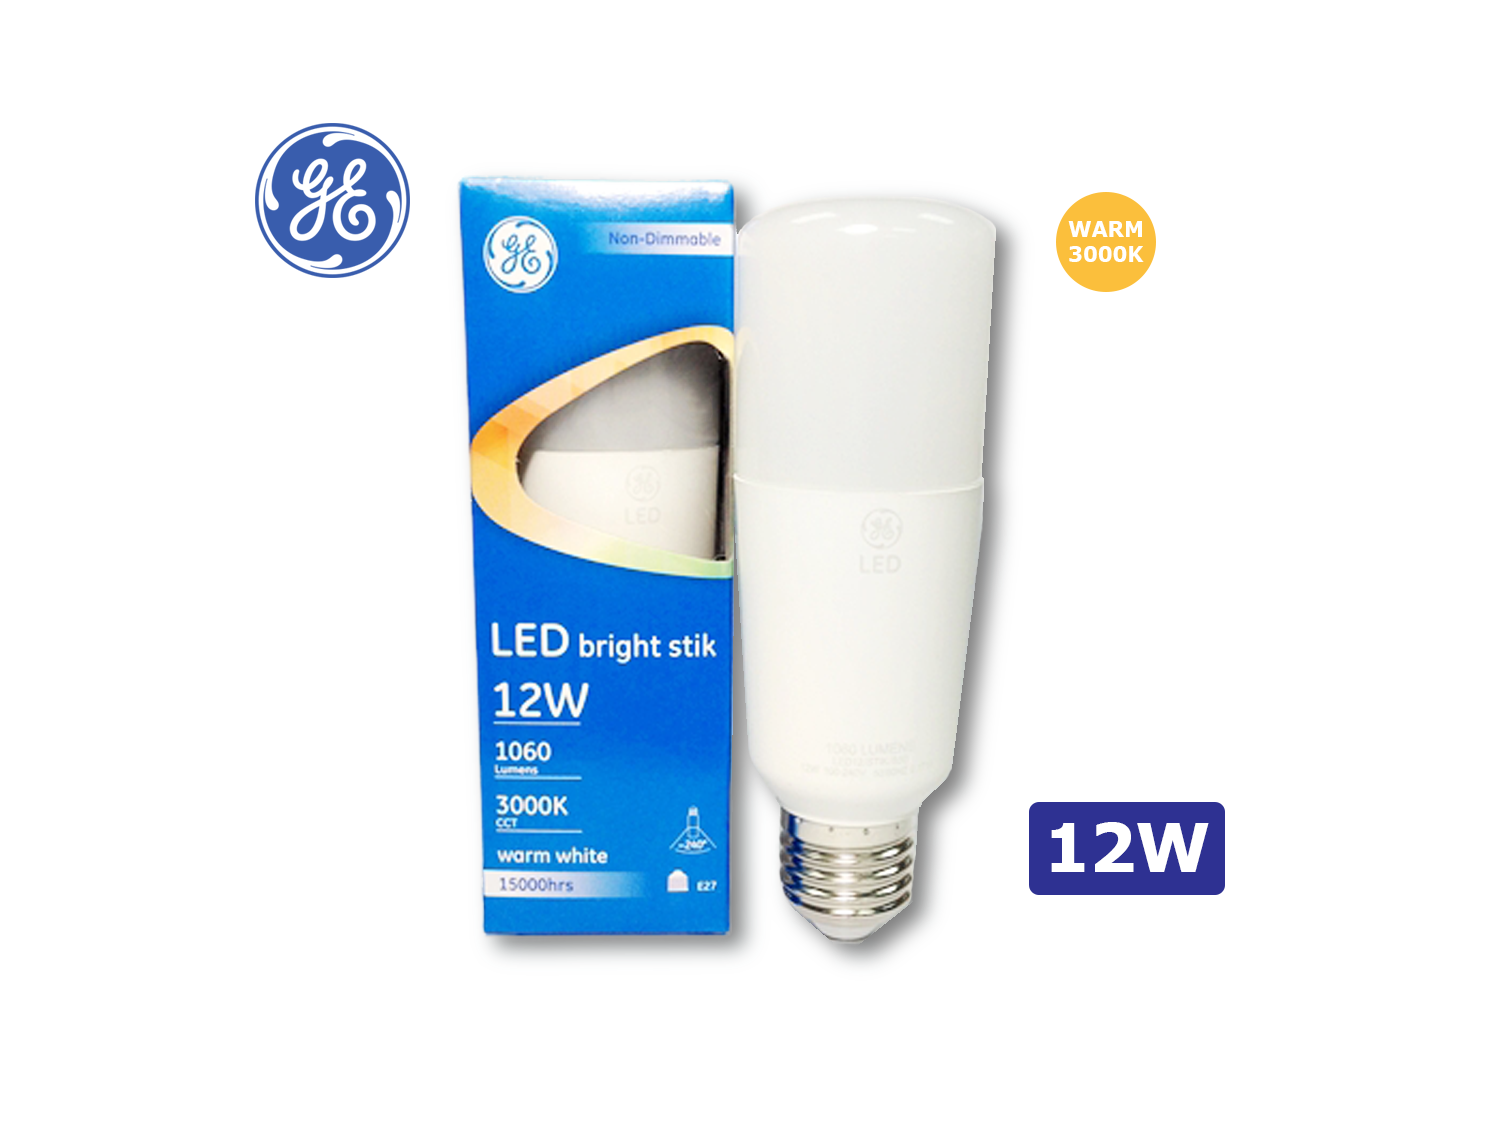 GE 12W/LED Brightstik E27/3000K(Warm White)/100-240V ; SKU: 74385T, LED12/STIK/830/100-240V/E27/G2